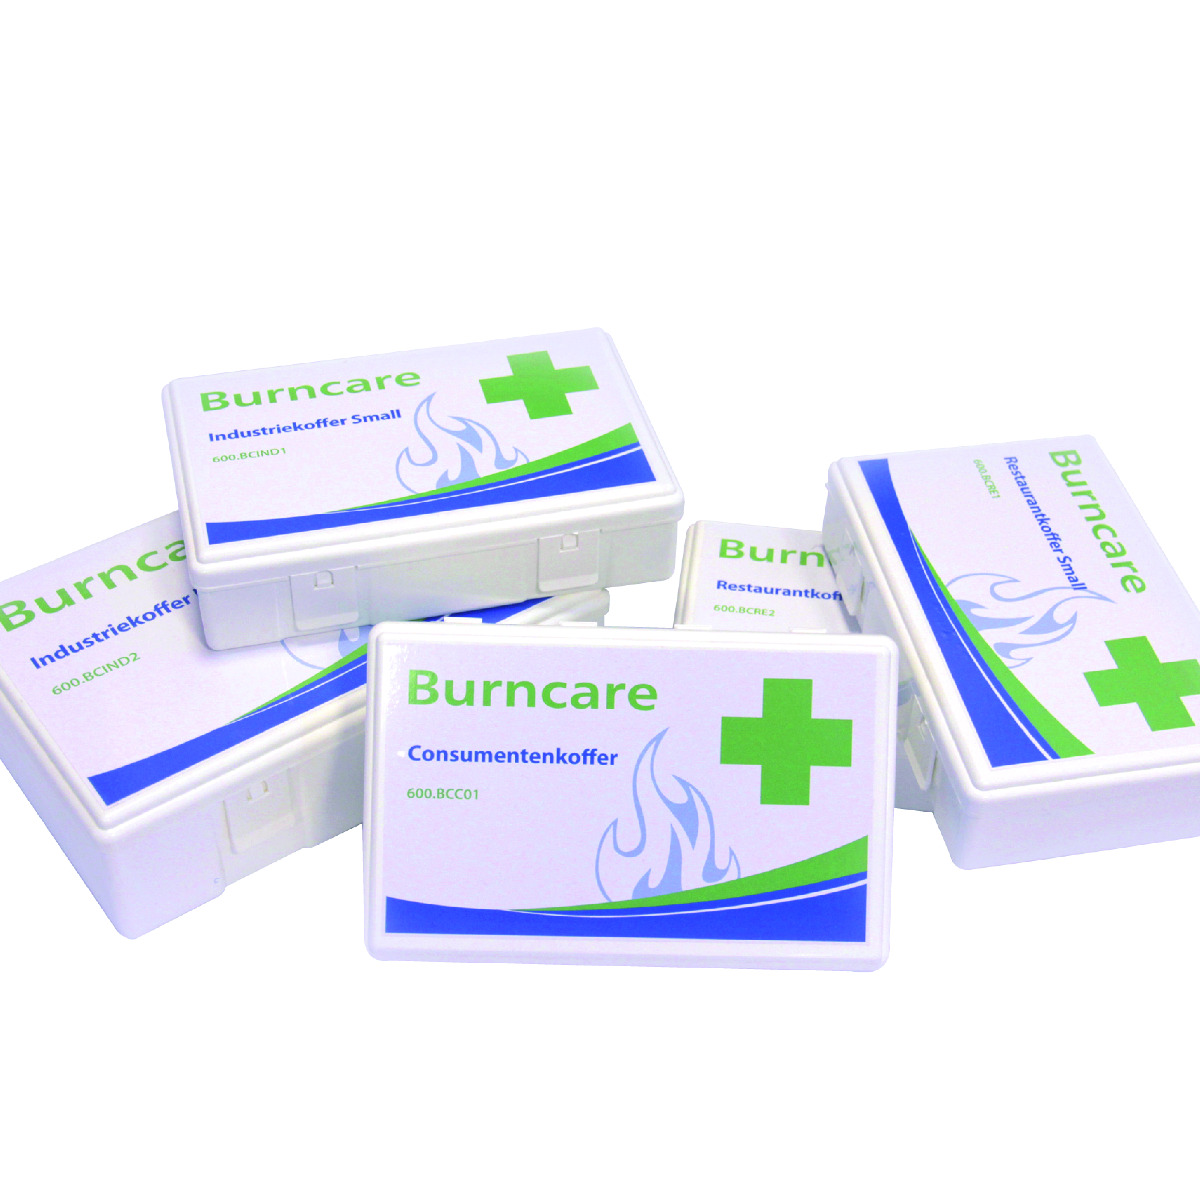 burncare industriekoffer small